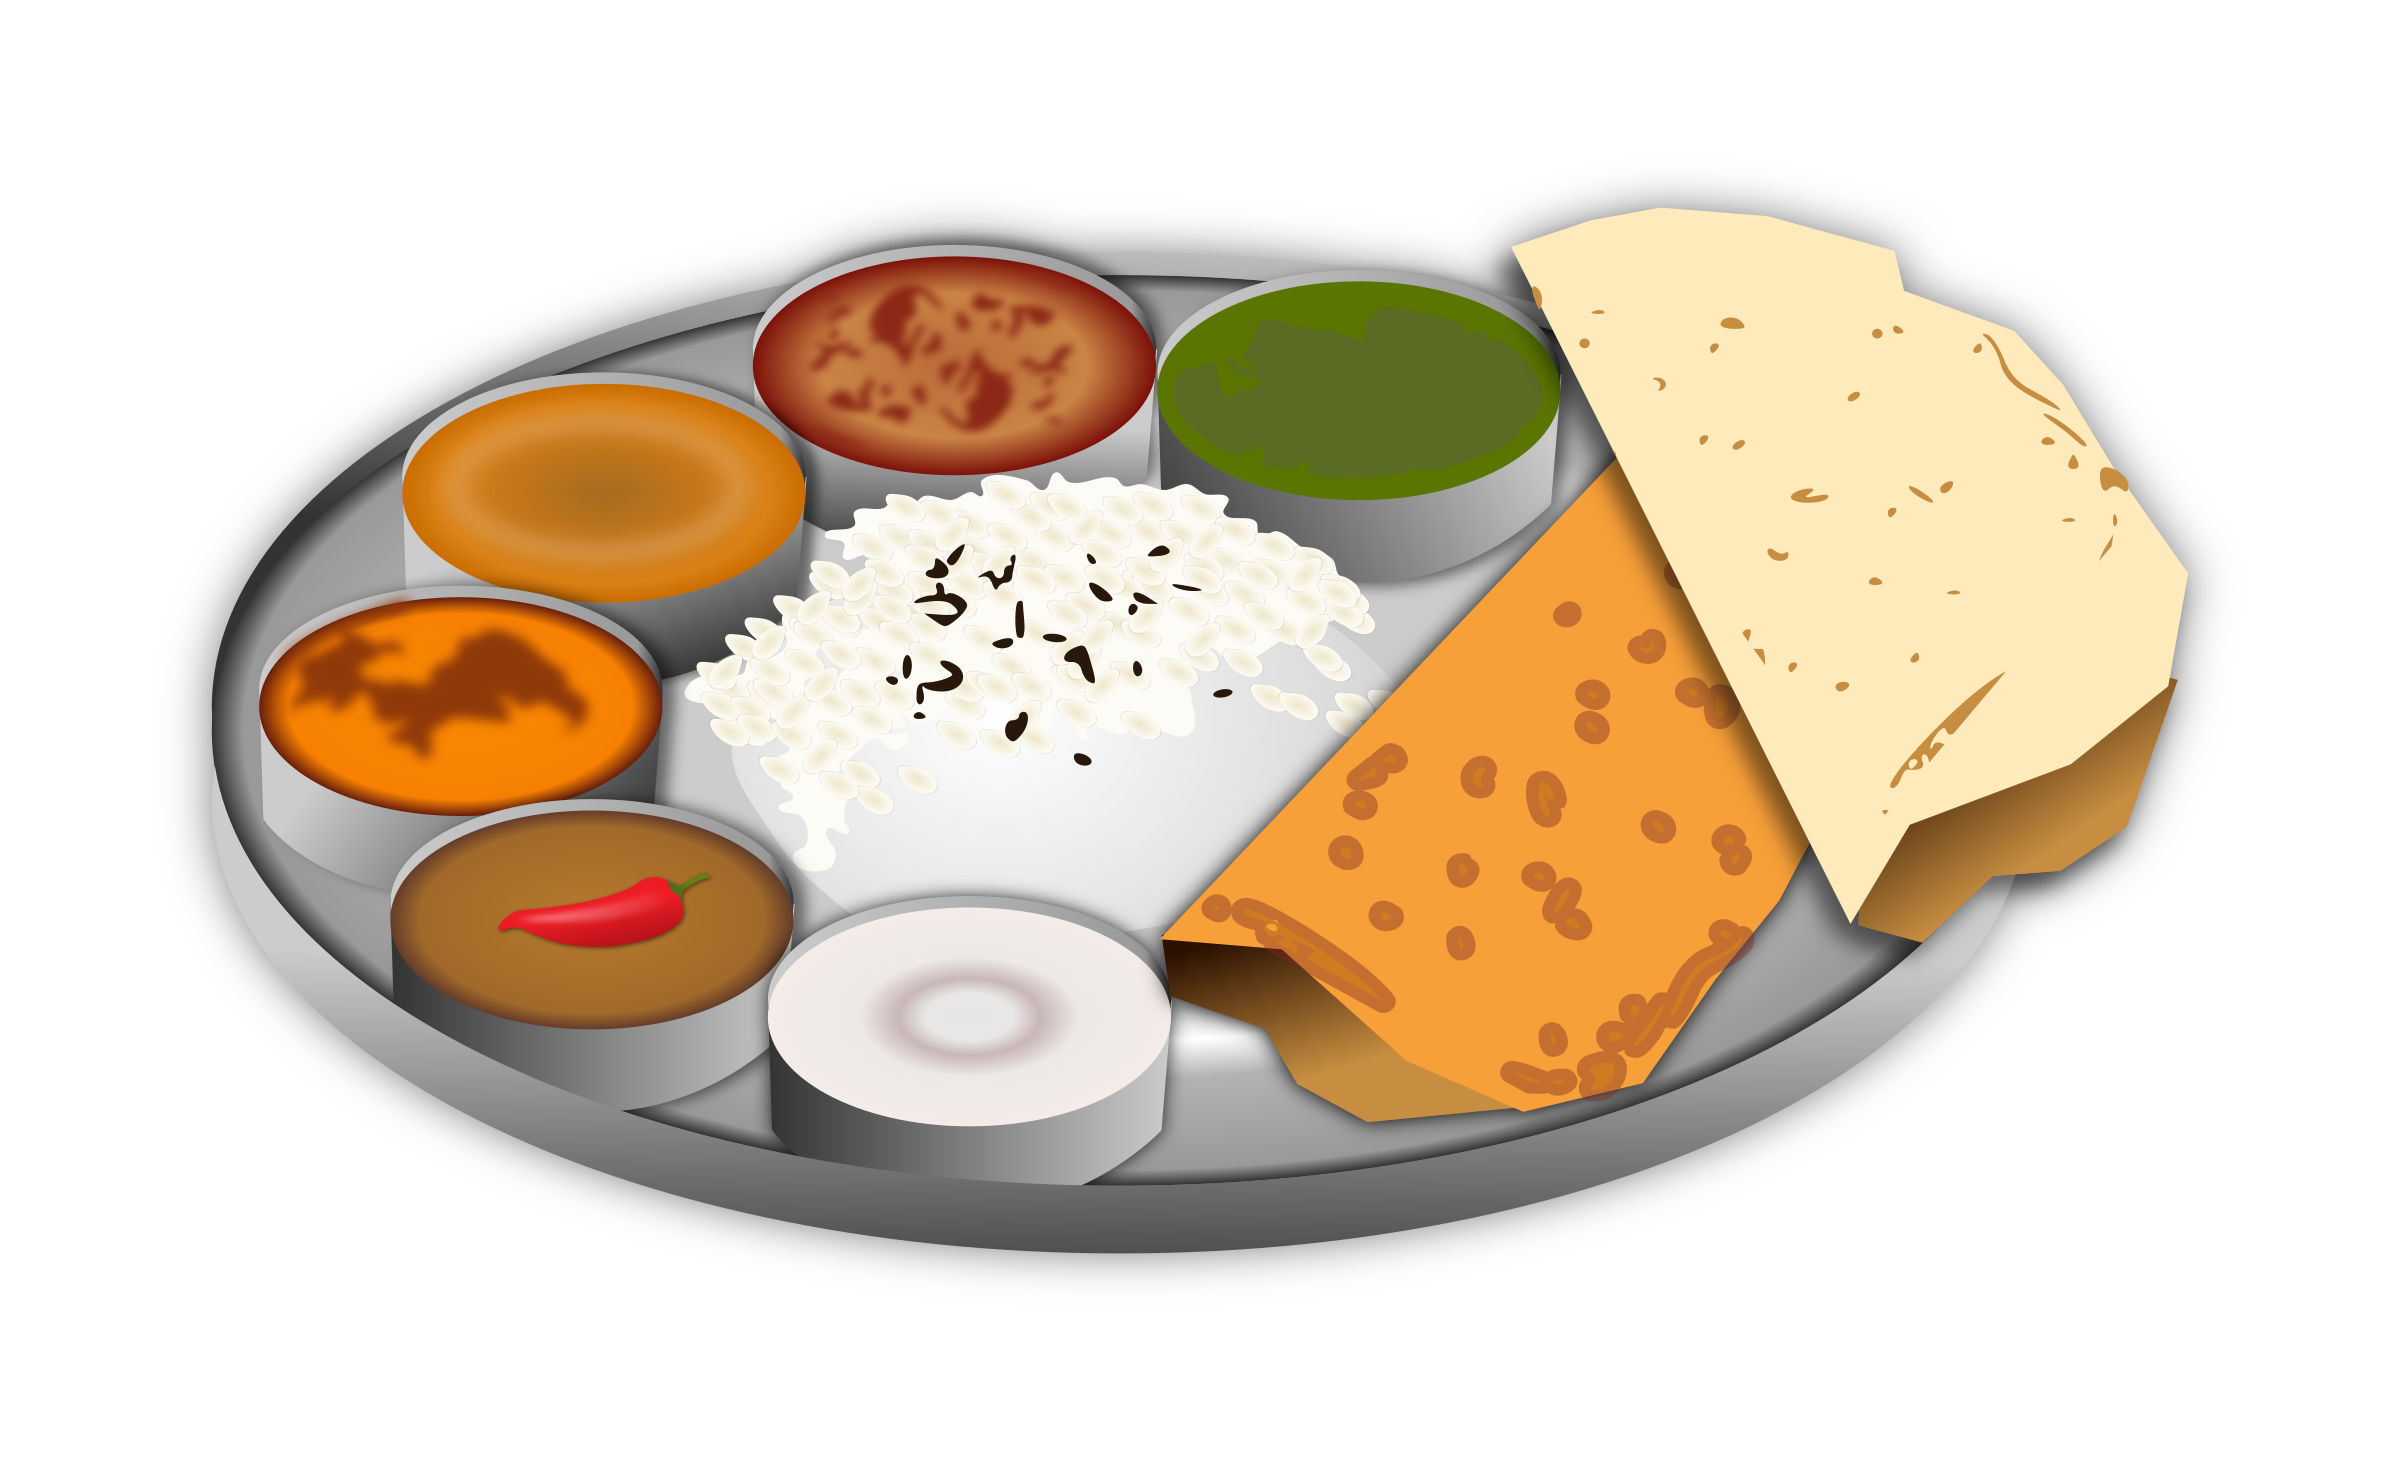 Covered clipart food platter Reverse Images Cartoon Roti Search